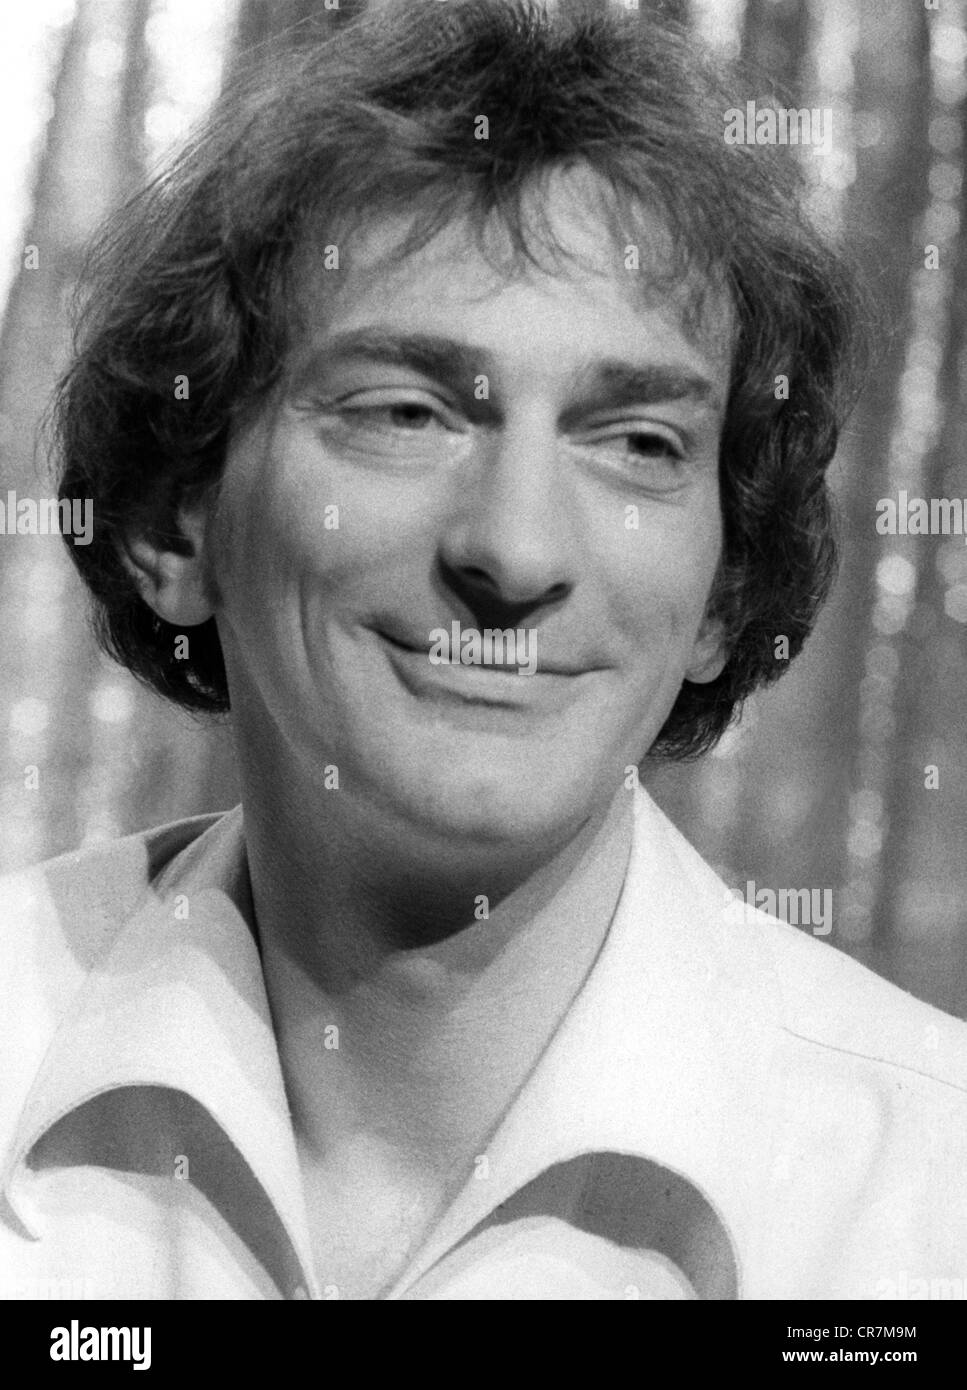 Hirsch, Ludwig, 28.2.1946 - 24.11.2011, Austrian, musician, singer, actor, portrait, 1979, Additional-Rights-Clearances - Stock Image